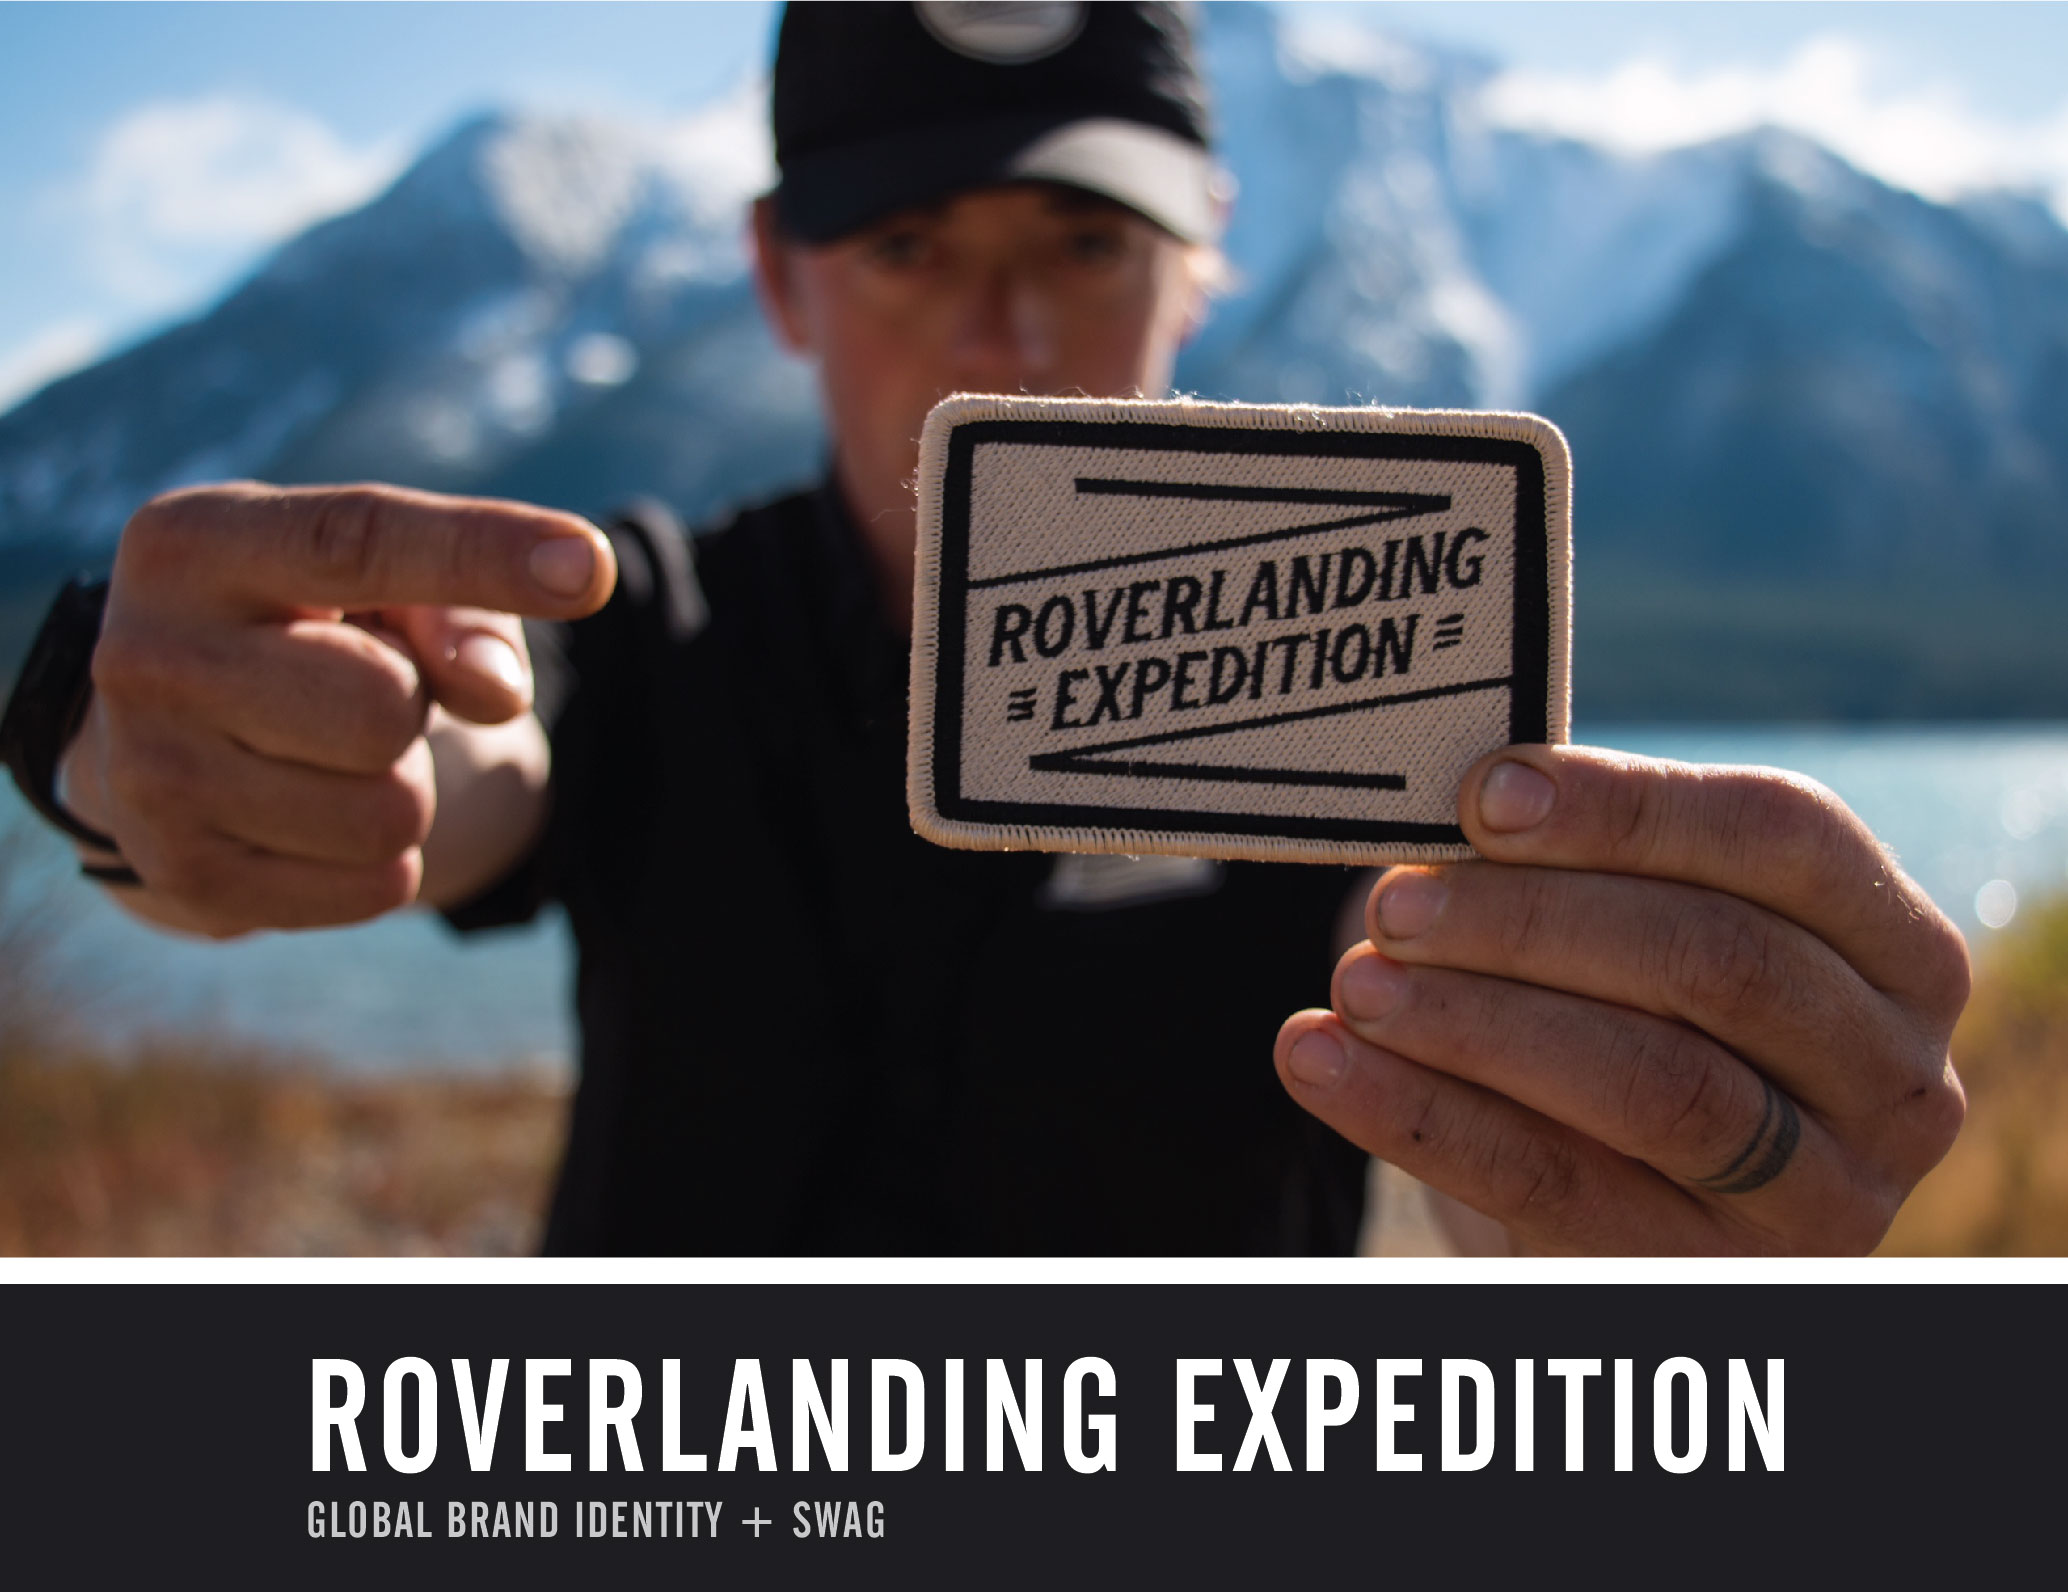 RoverlandingExpedition_header-01.jpg